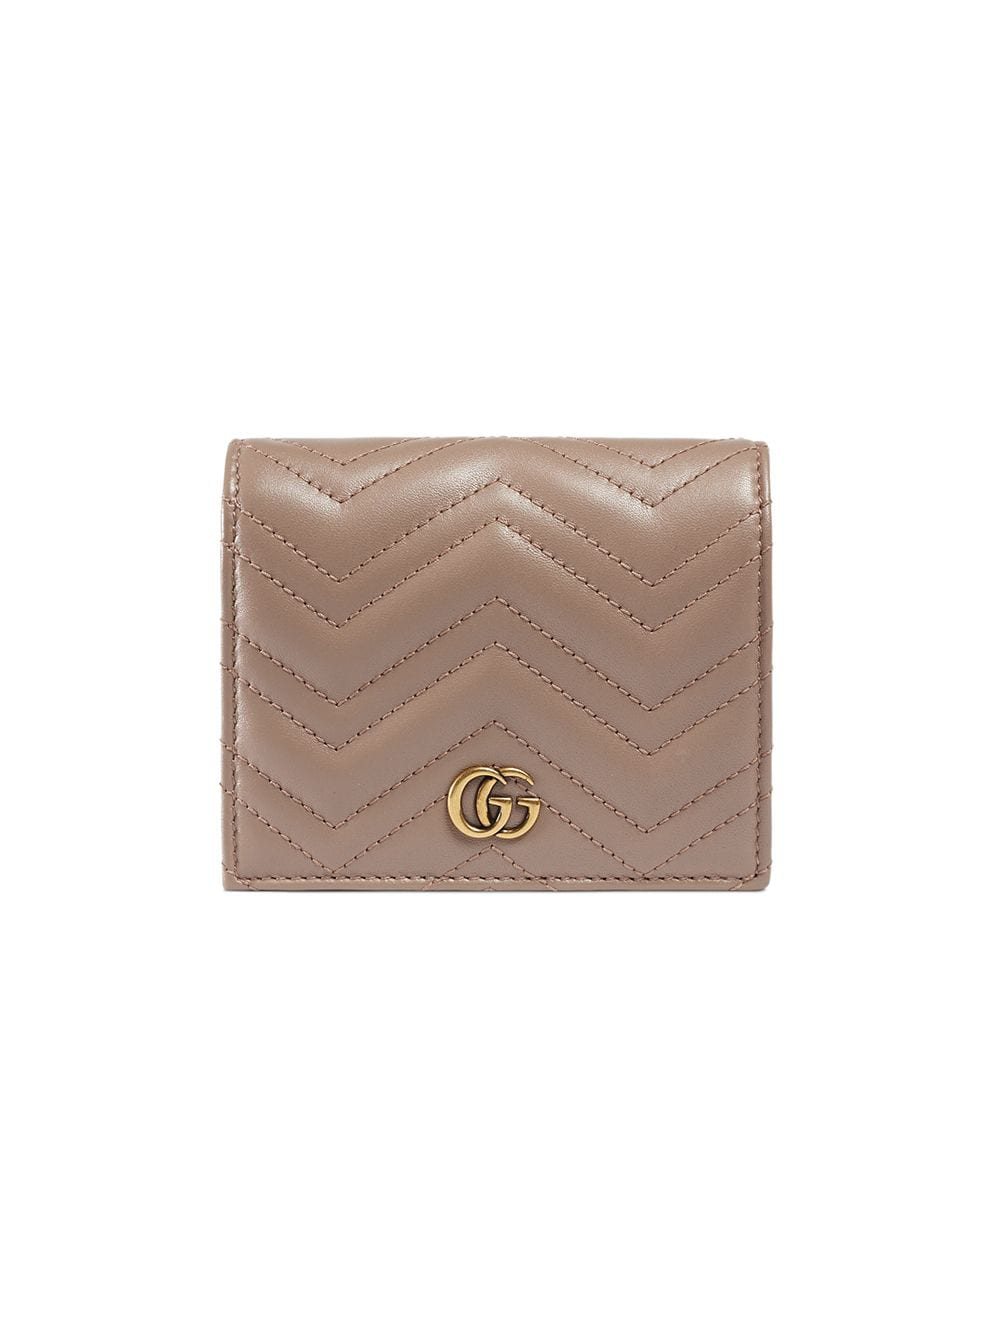 8d90ac18c107 Gucci Gg Marmont Leather Wallet In Neutrals | ModeSens